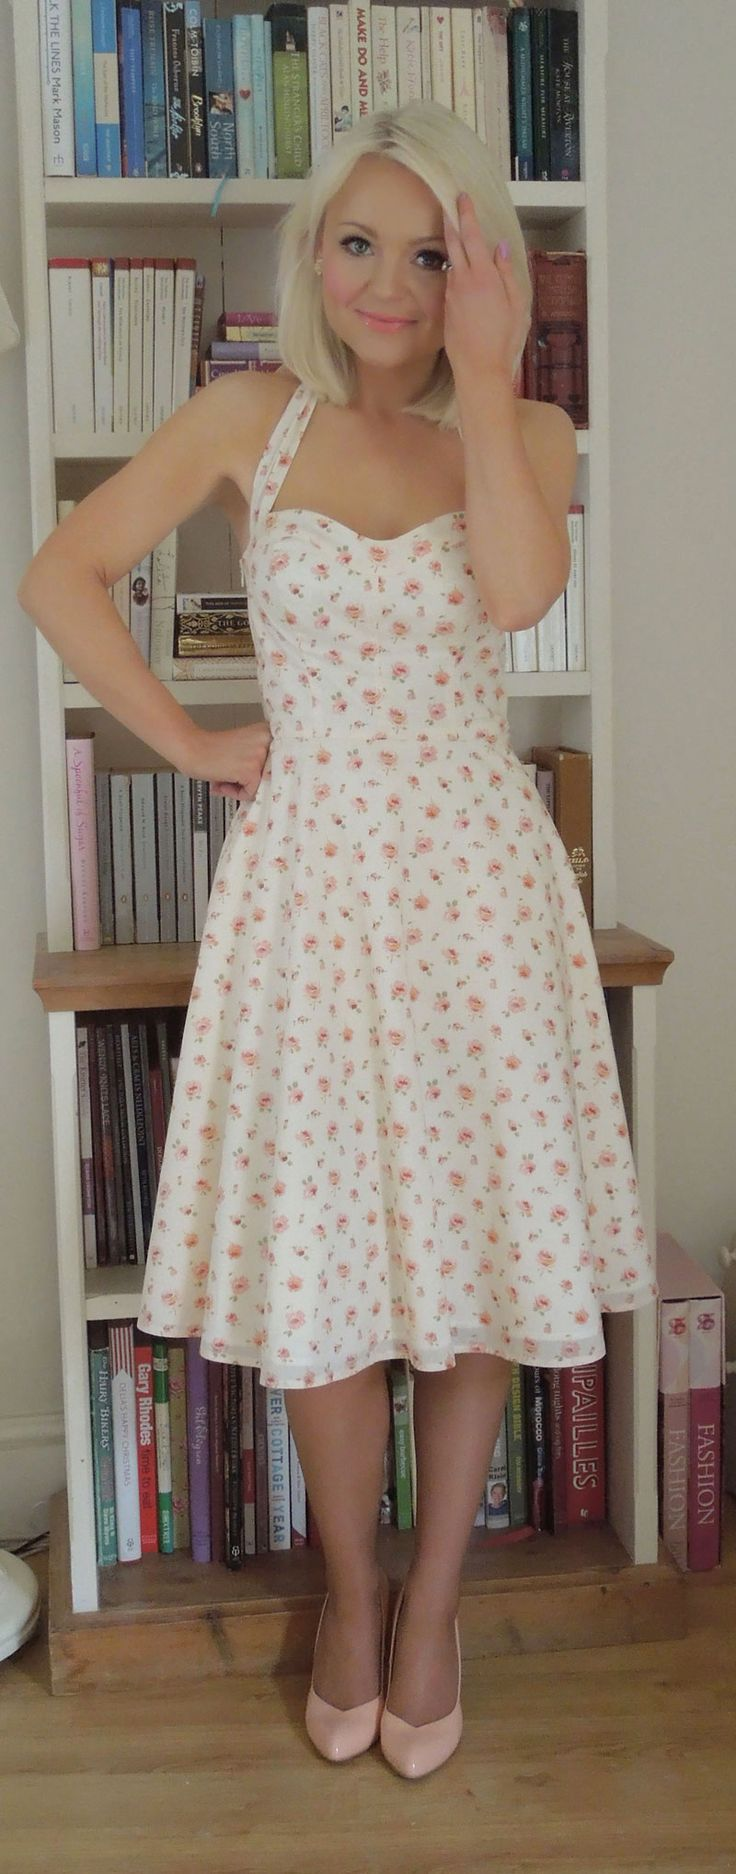 Rosa Liberty Print Dress #libertyfabric #libertyprintdress